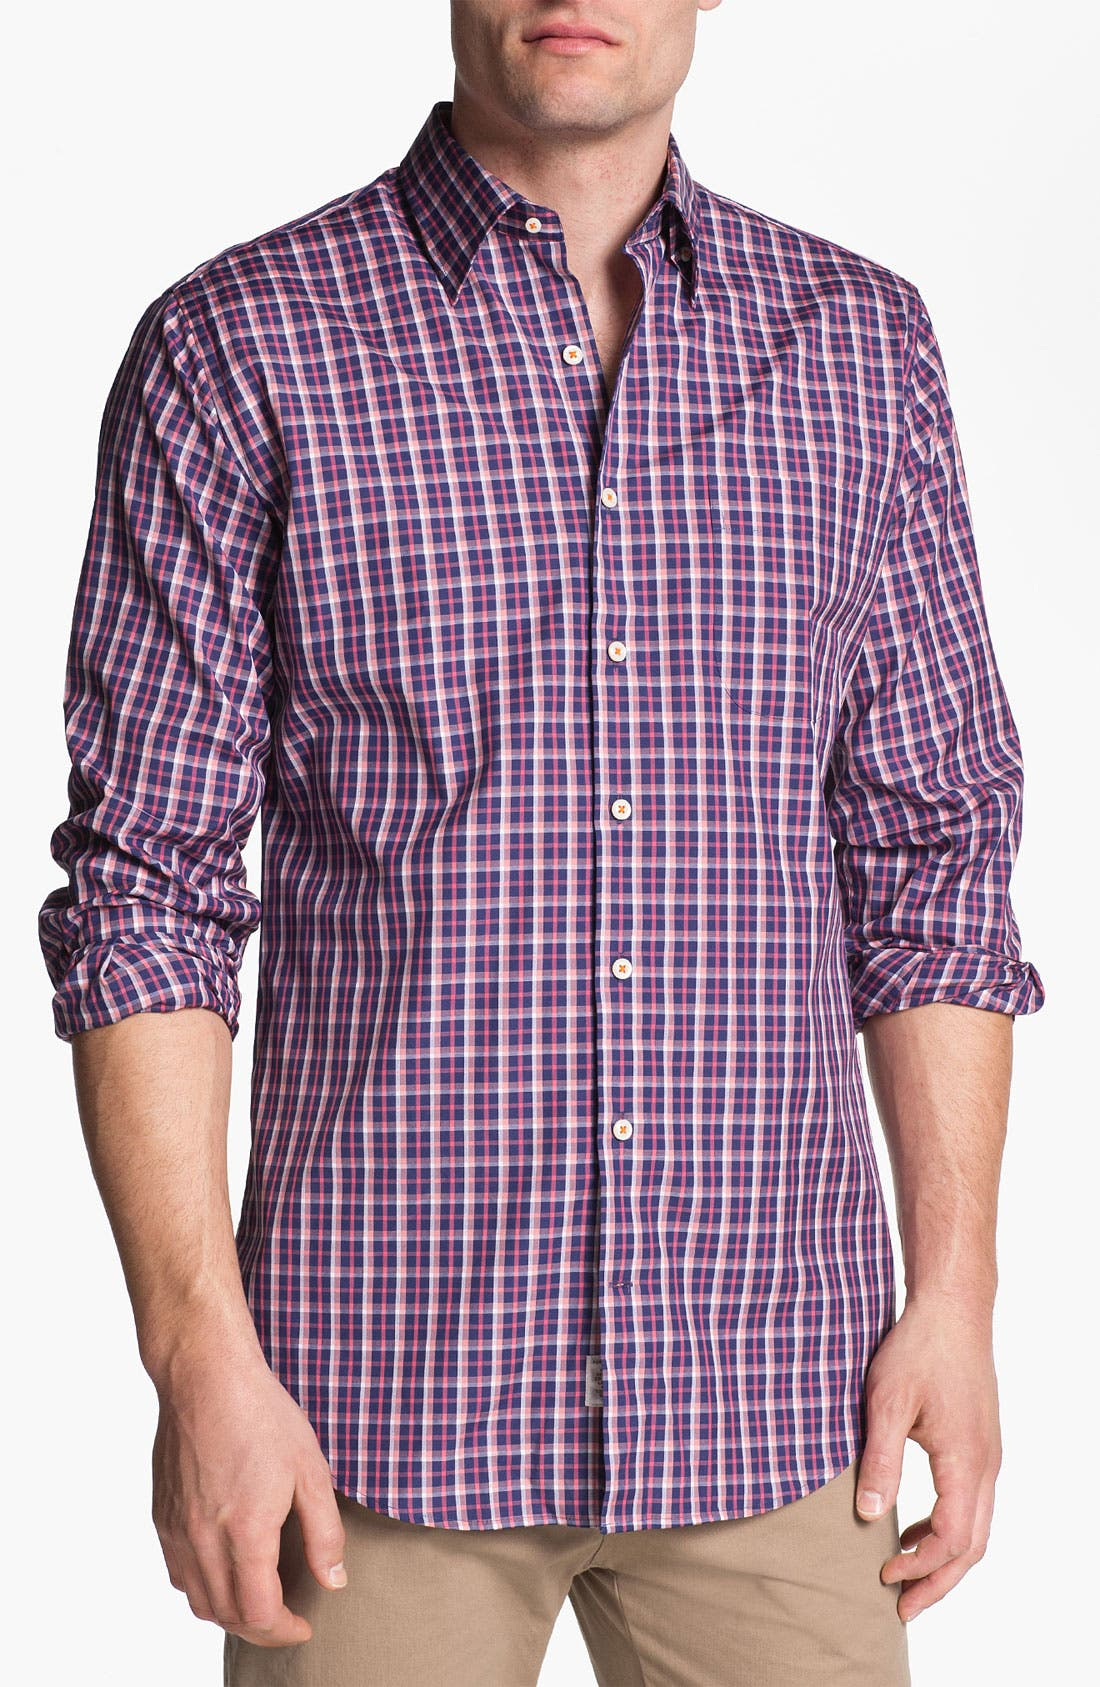 Alternate Image 1 Selected - Peter Millar 'Amsterdam' Regular Fit Plaid Sport Shirt